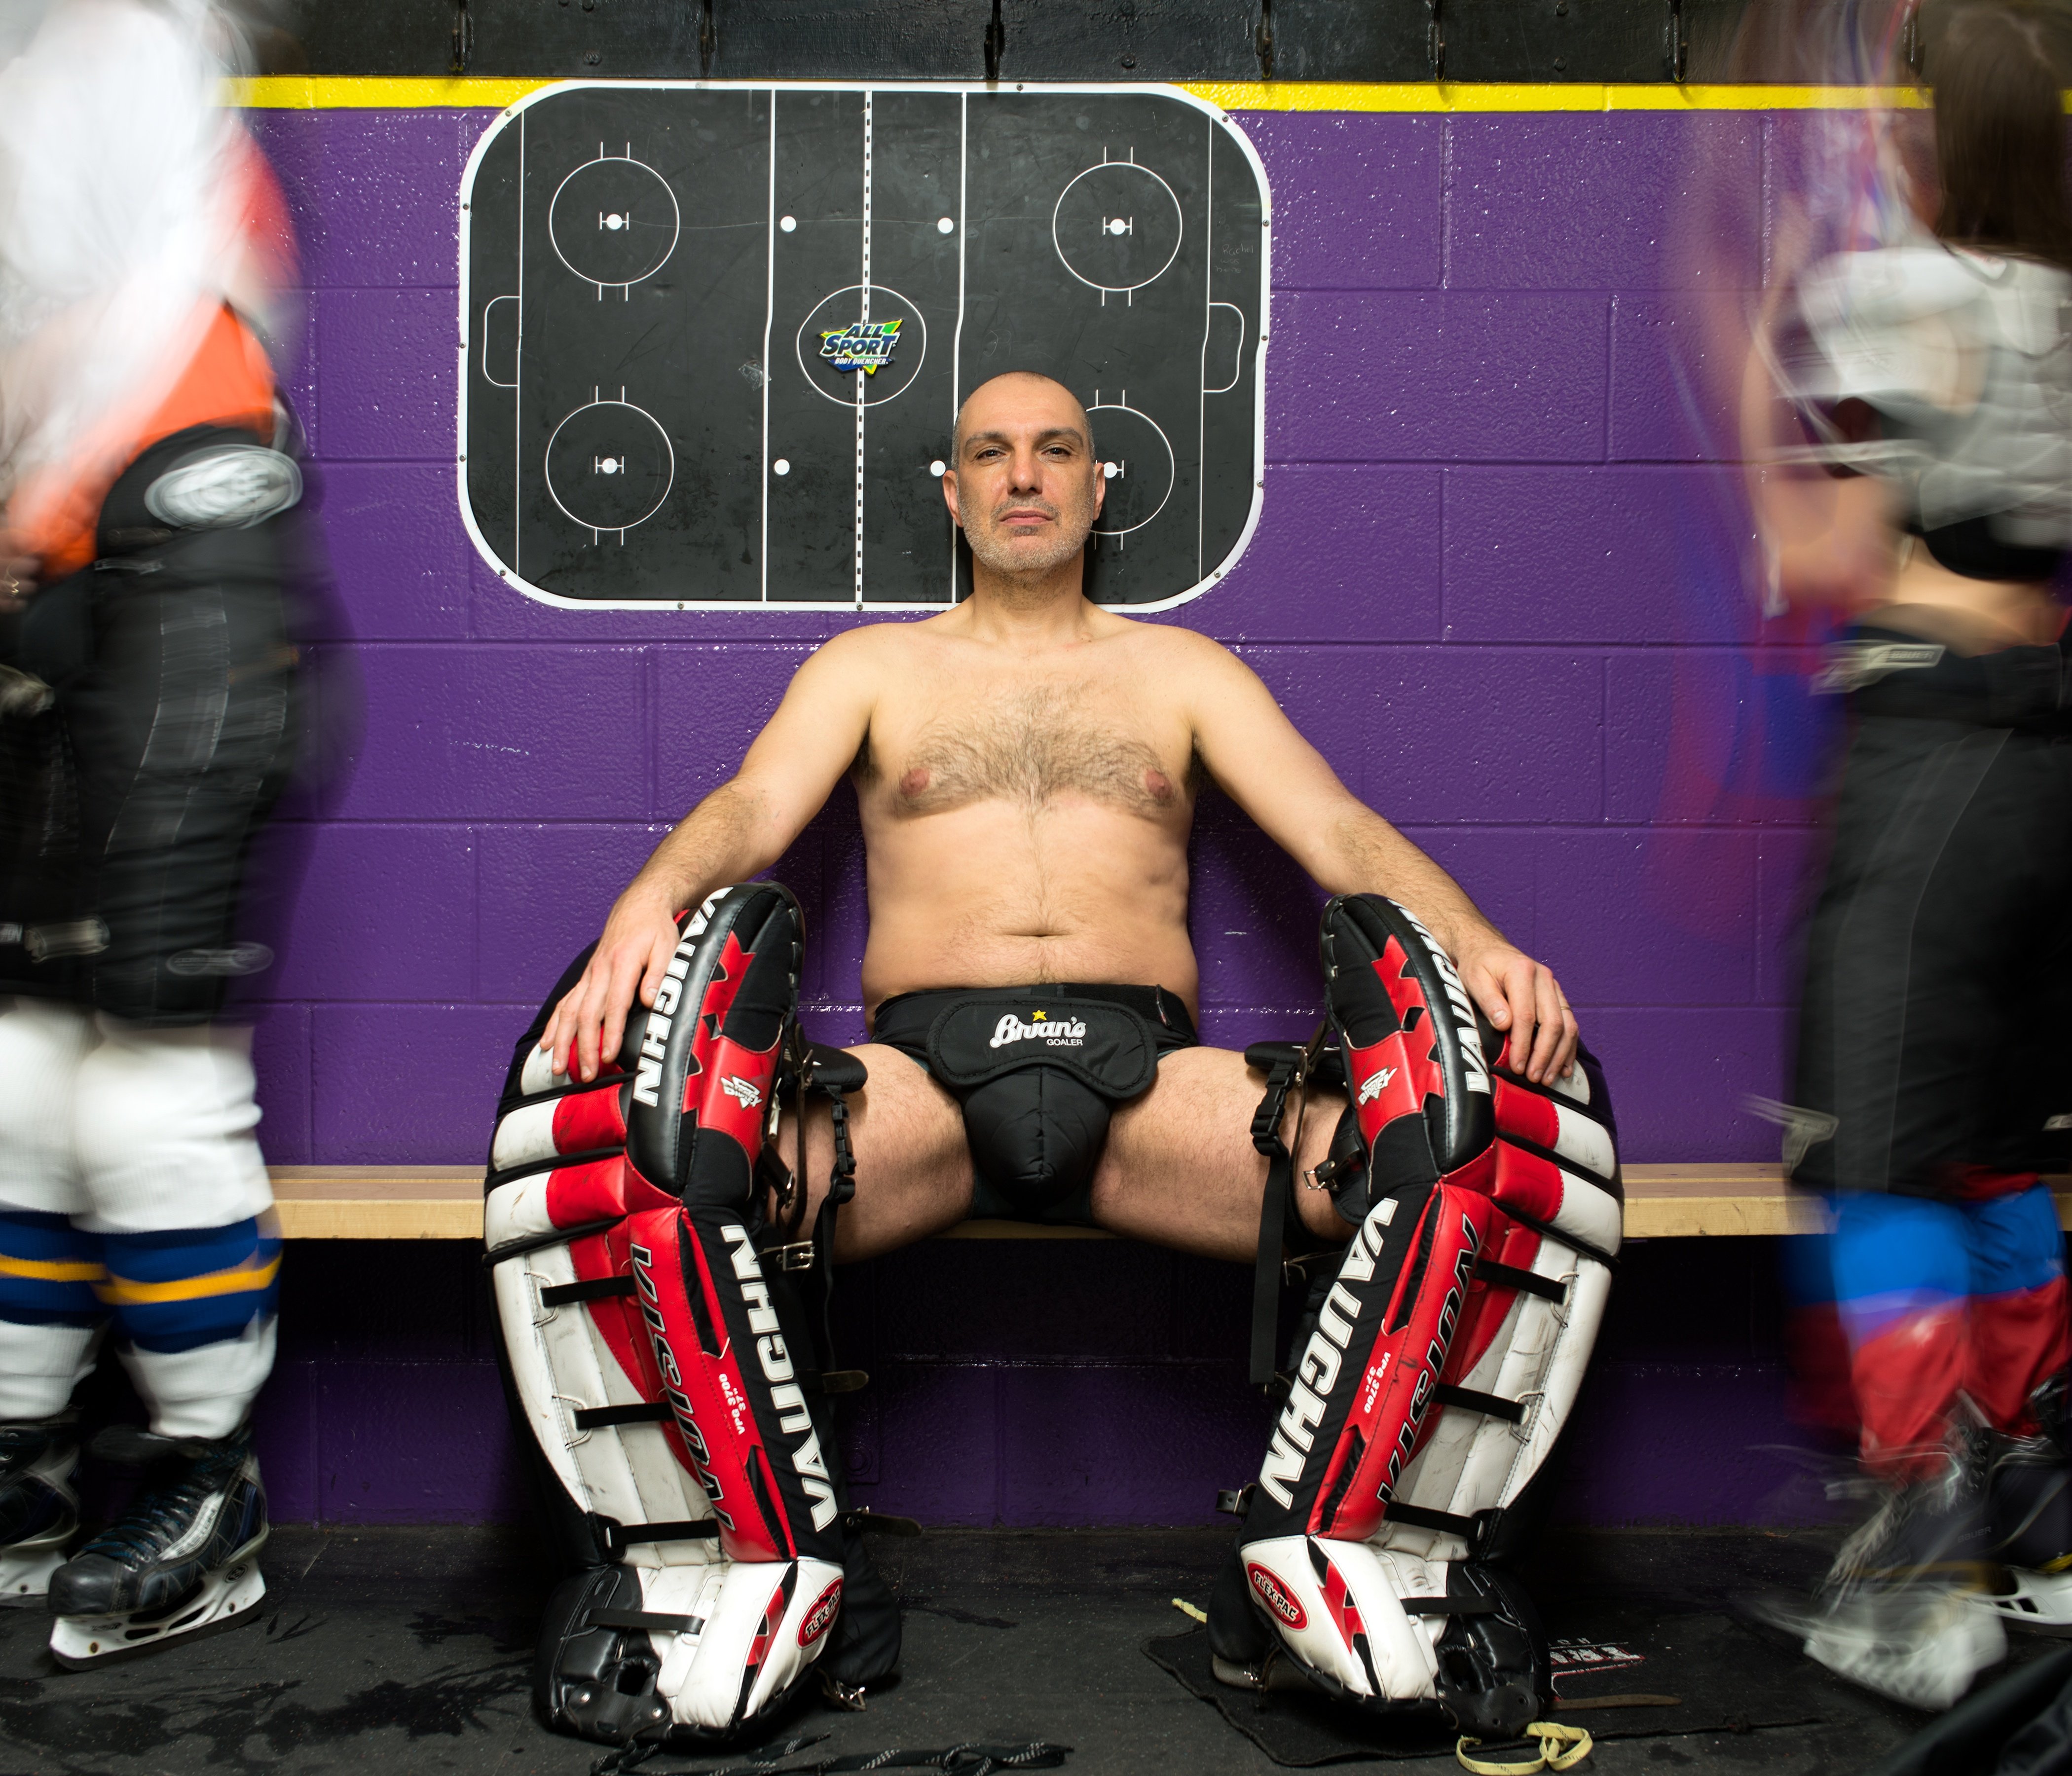 Espn body issues have featured more hockey players than you think puck it up